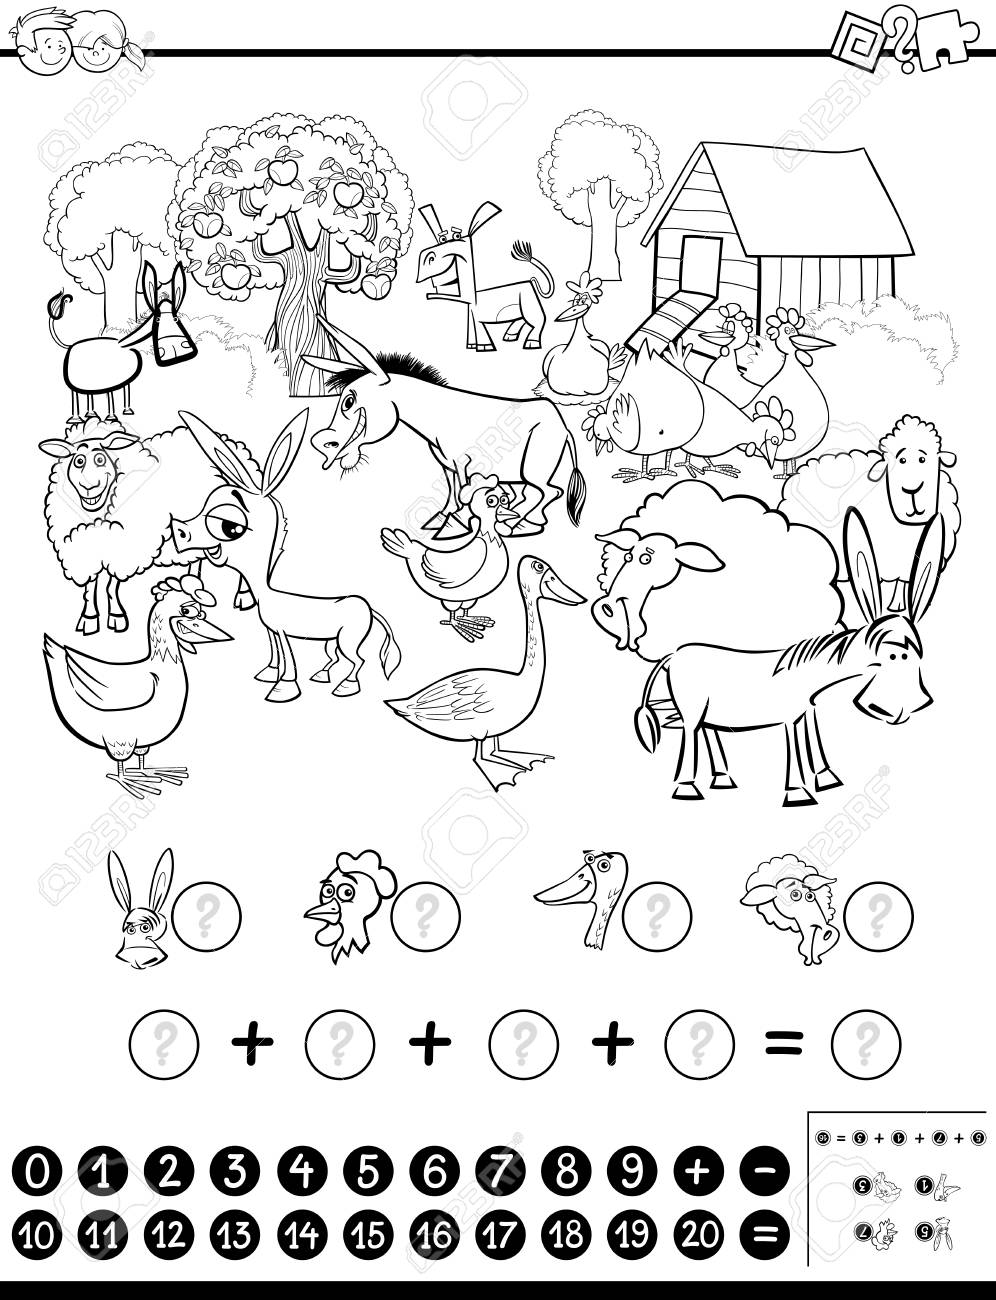 Farm Clipart Black And White : clipart, black, white, Black, White, Cartoon, Illustration, Educational, Mathematical.., Royalty, Cliparts,, Vectors,, Stock, Illustration., Image, 78840030.